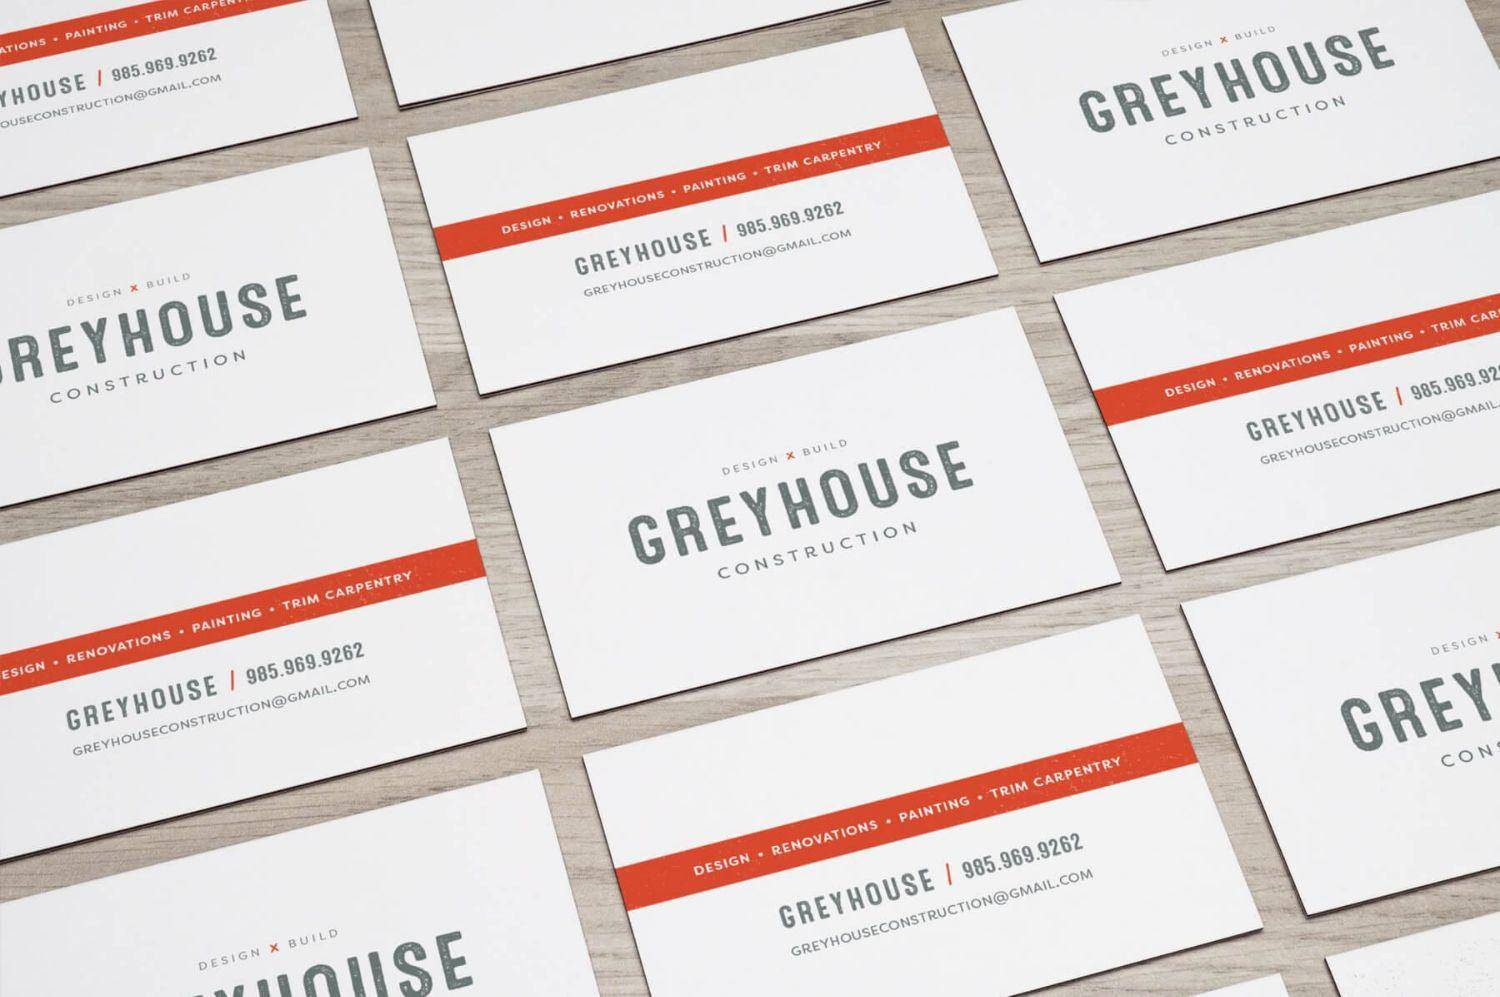 Greyhouse Logo & Branding on a business card design